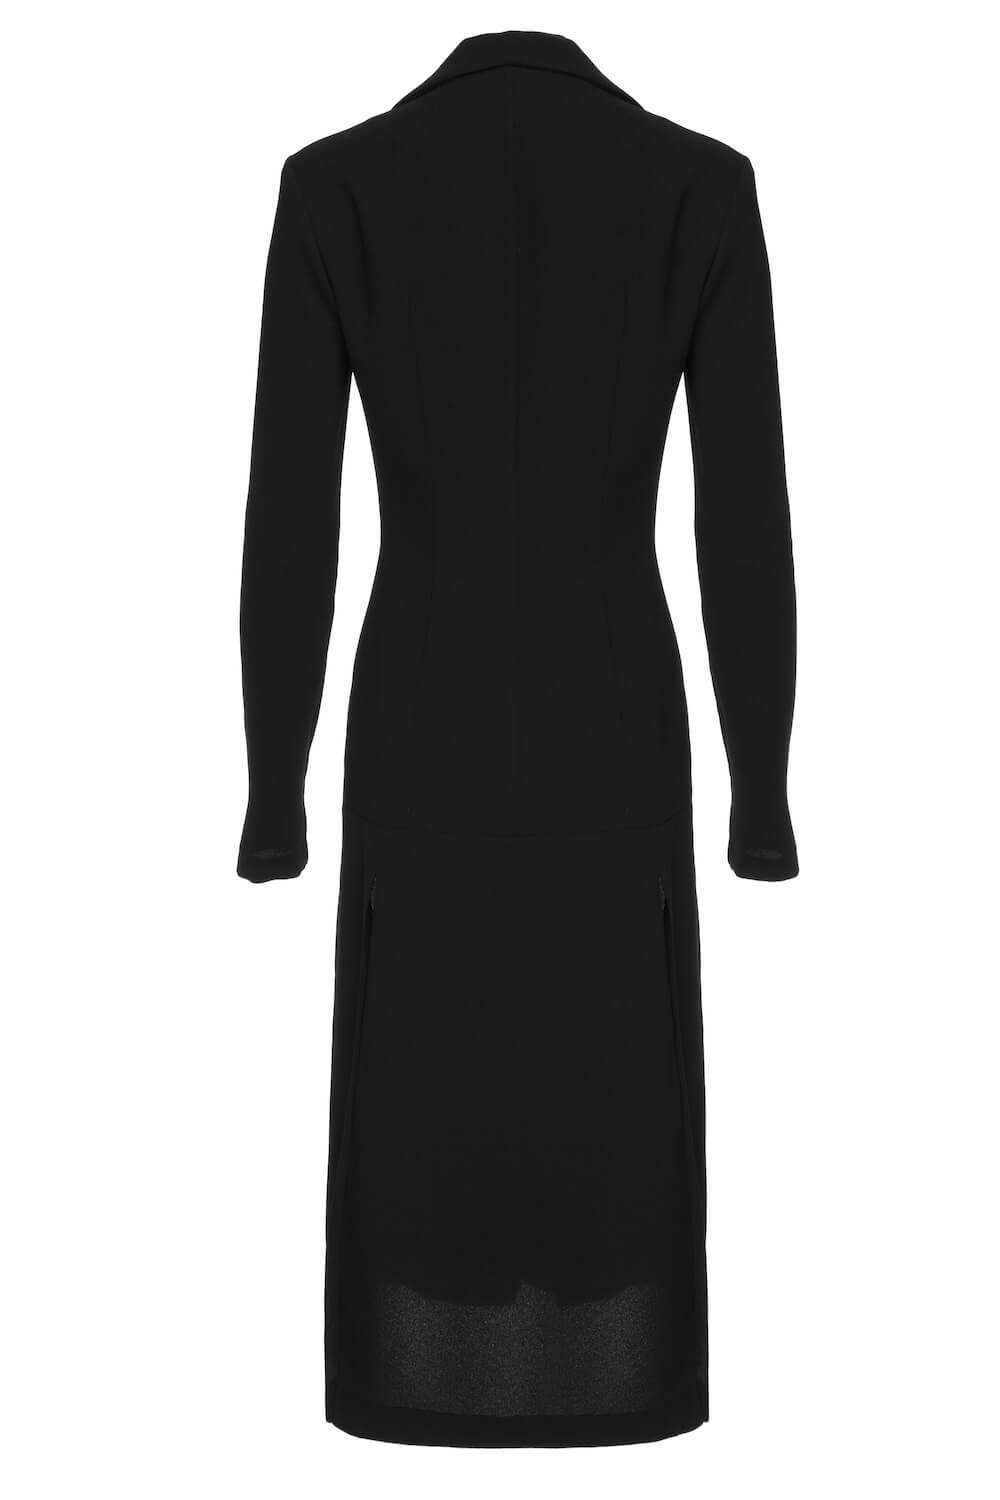 BLACK DRESS WITH LONG COLLAR